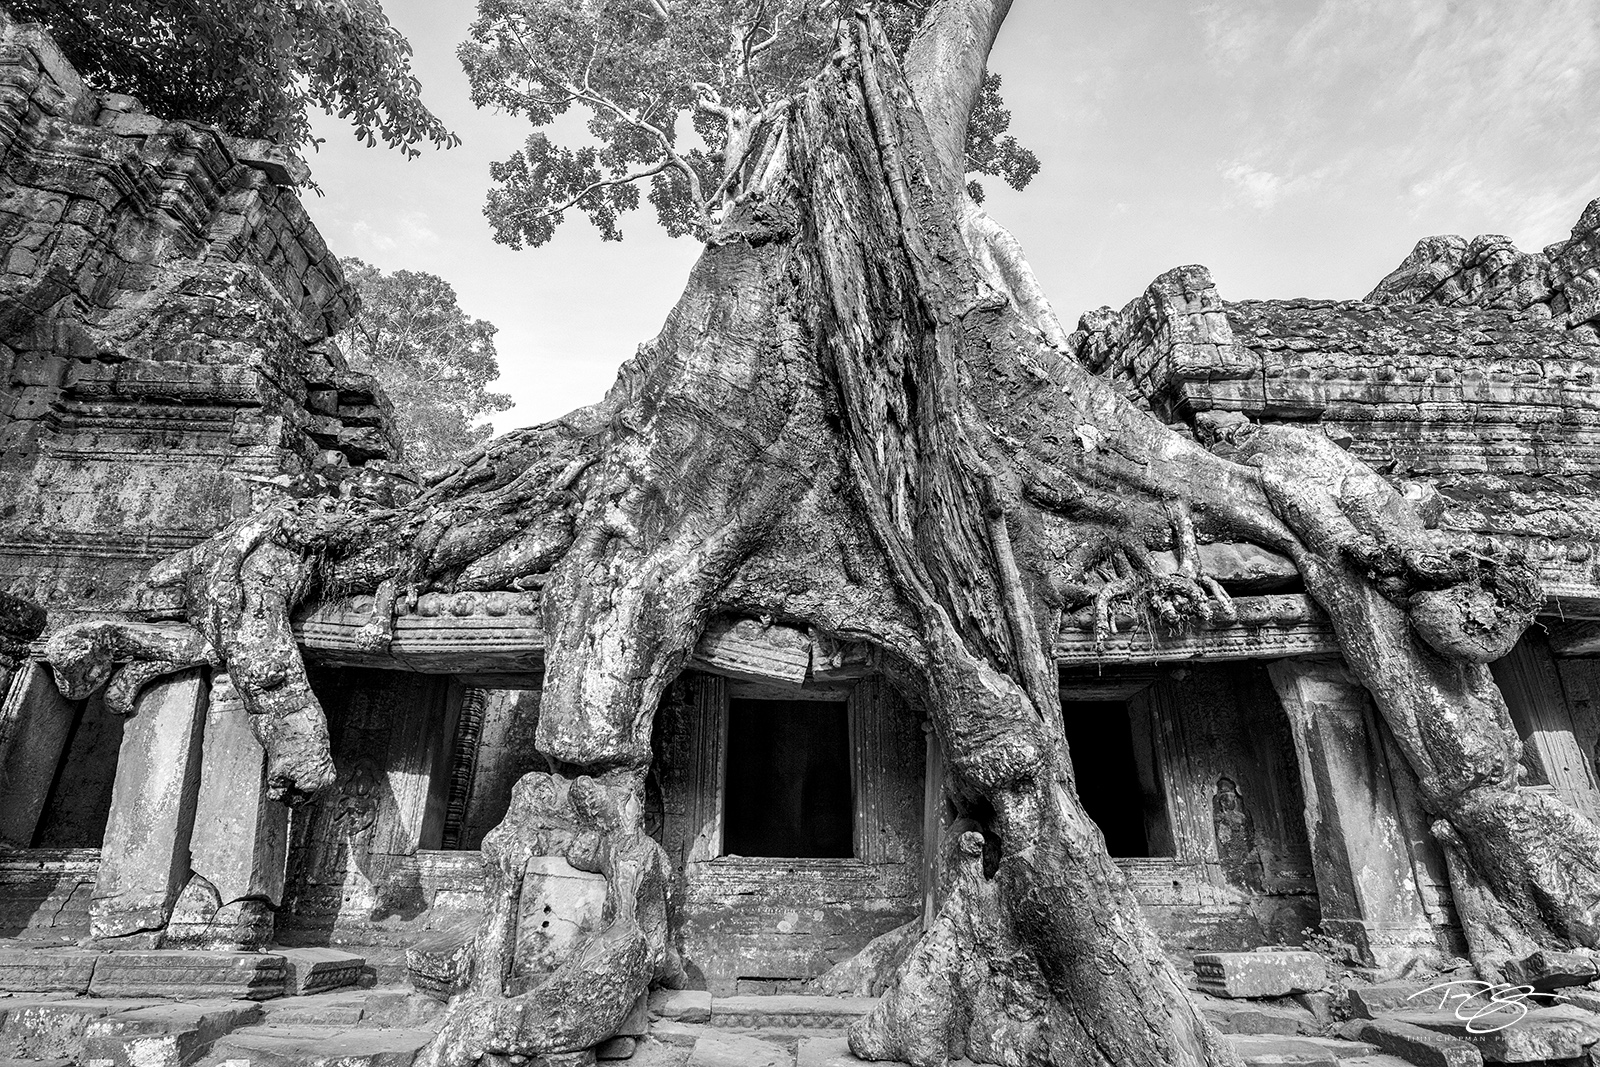 cambodia, temple, guardians, tree roots, roots, tree, spung, strangler, banyan, black and white, b&w, preah khan, angkor wat, monastery, gallery, chamber, ancient, overgrown, reclamation, nature recla, photo